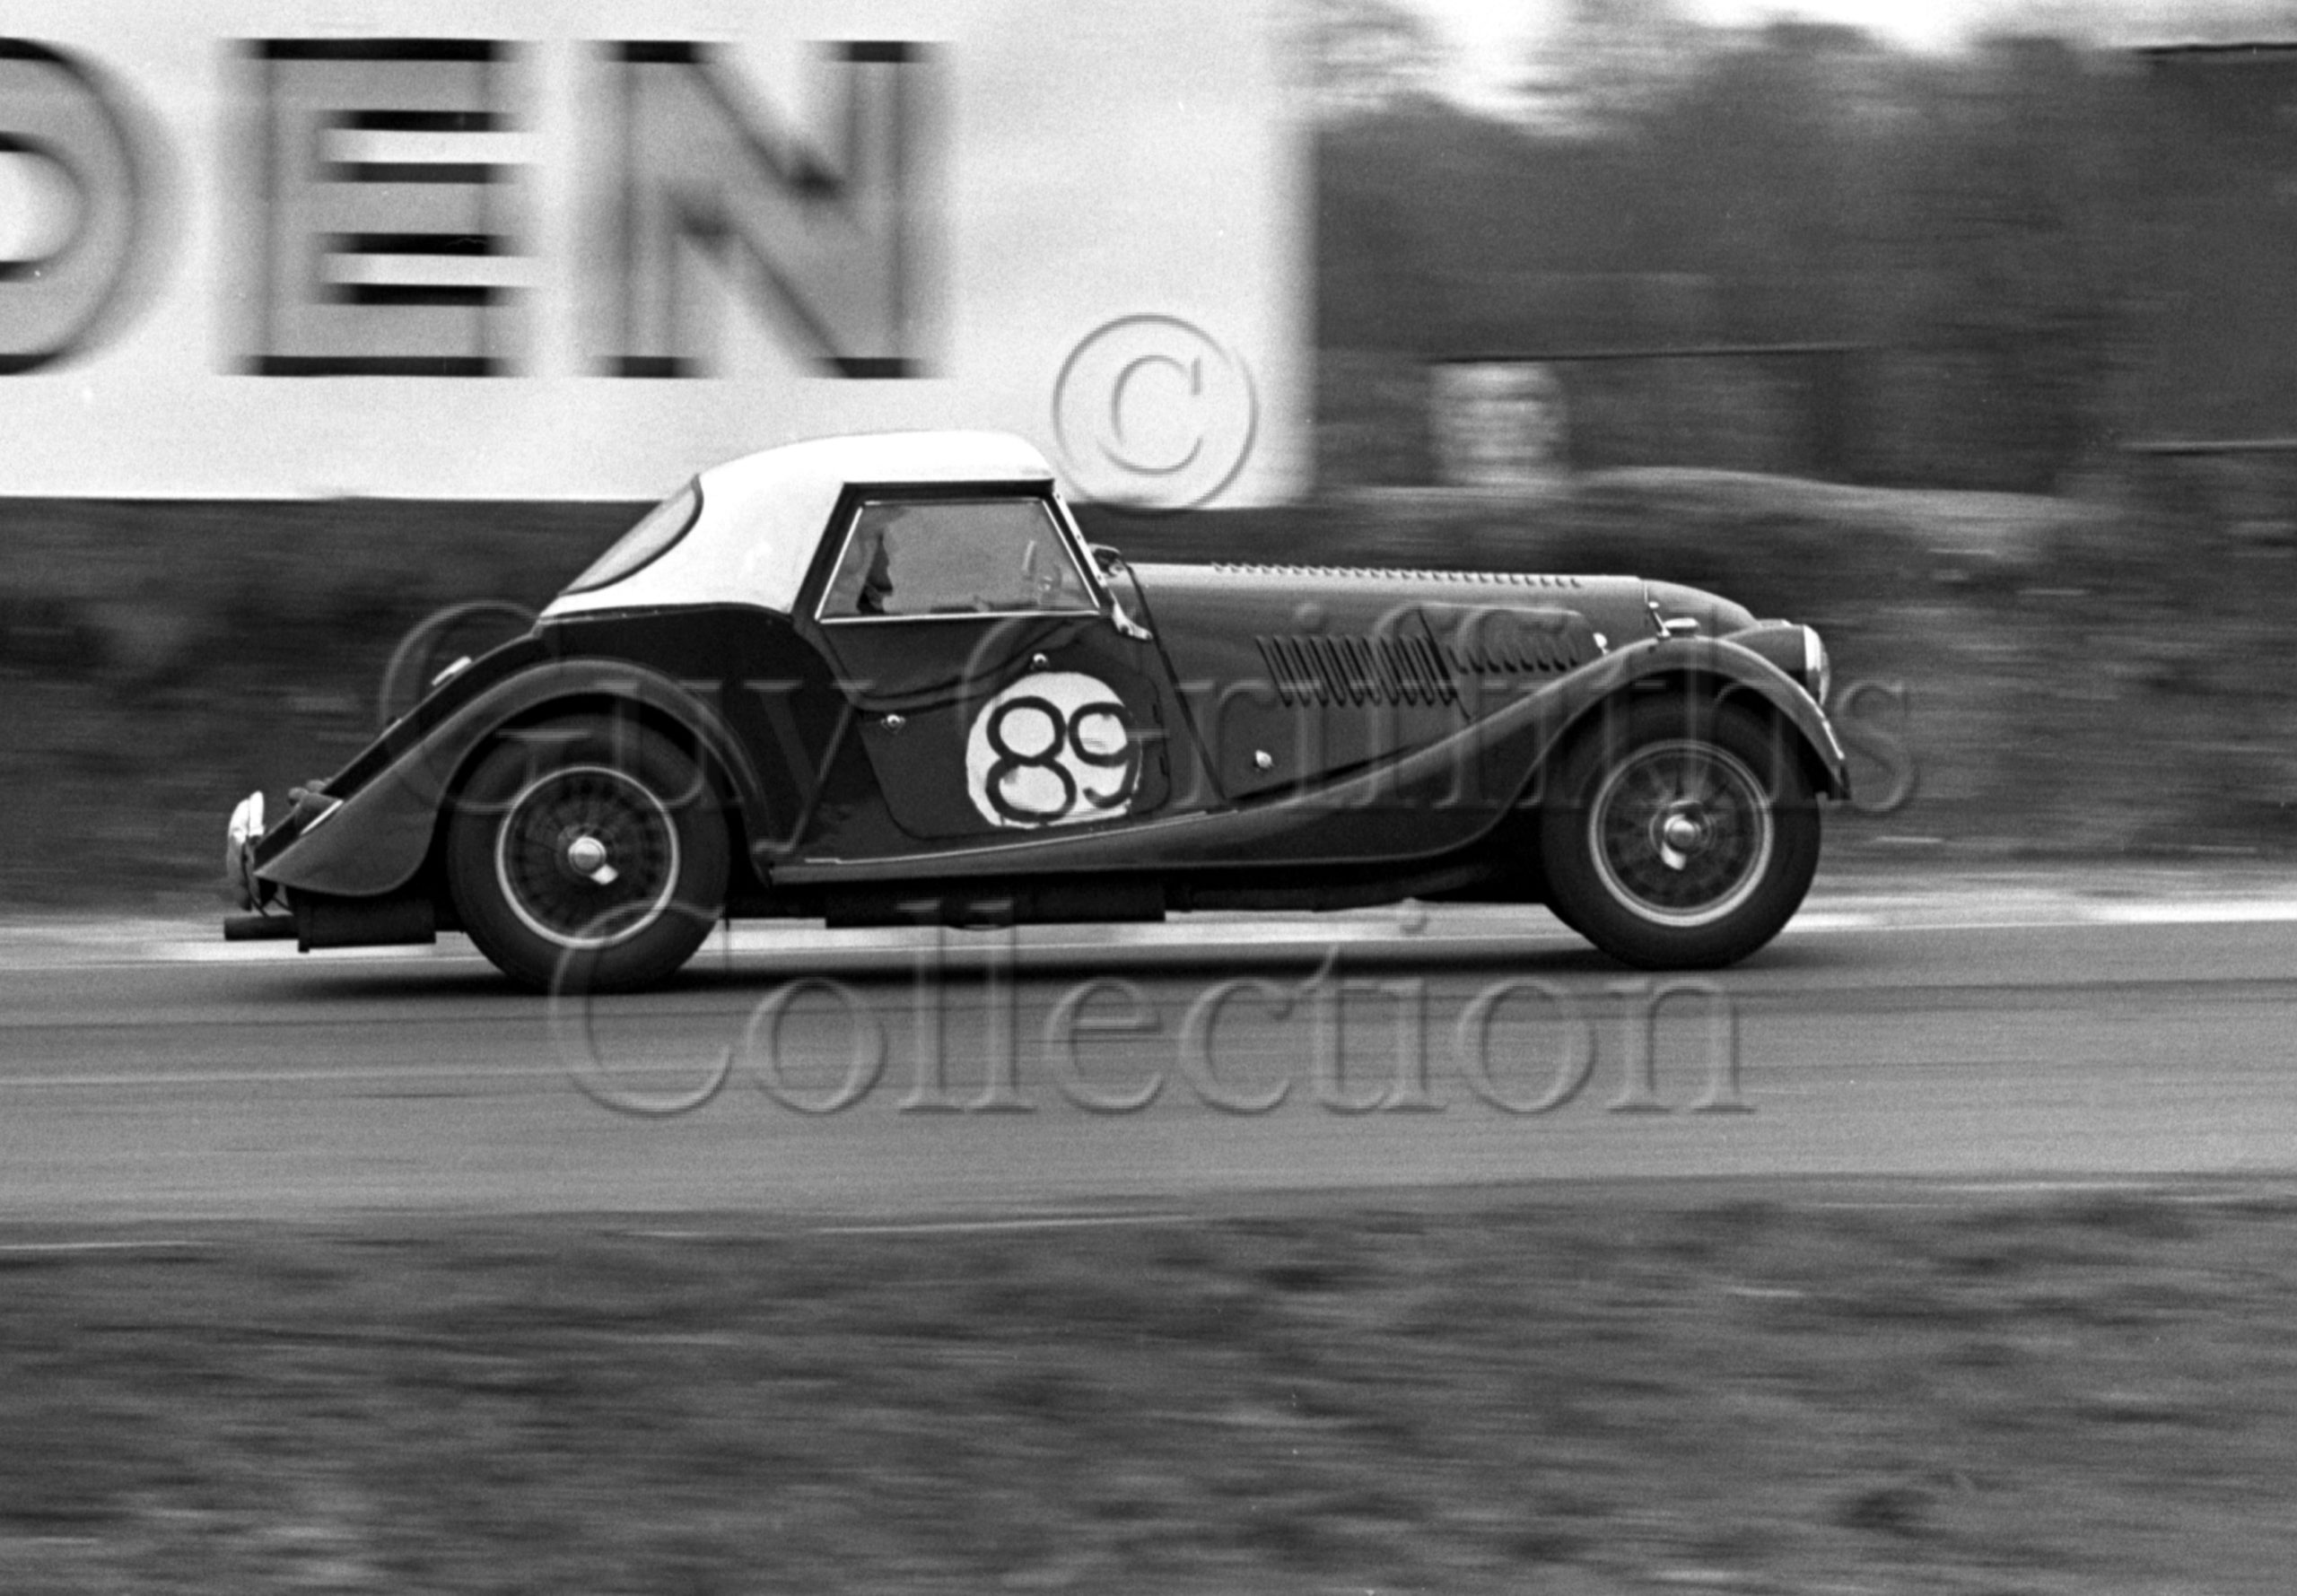 81-123–A-A-Denton–Morgan-Plus-4–Brands-Hatch–12-04-1964.jpg - Guy Griffiths Collection